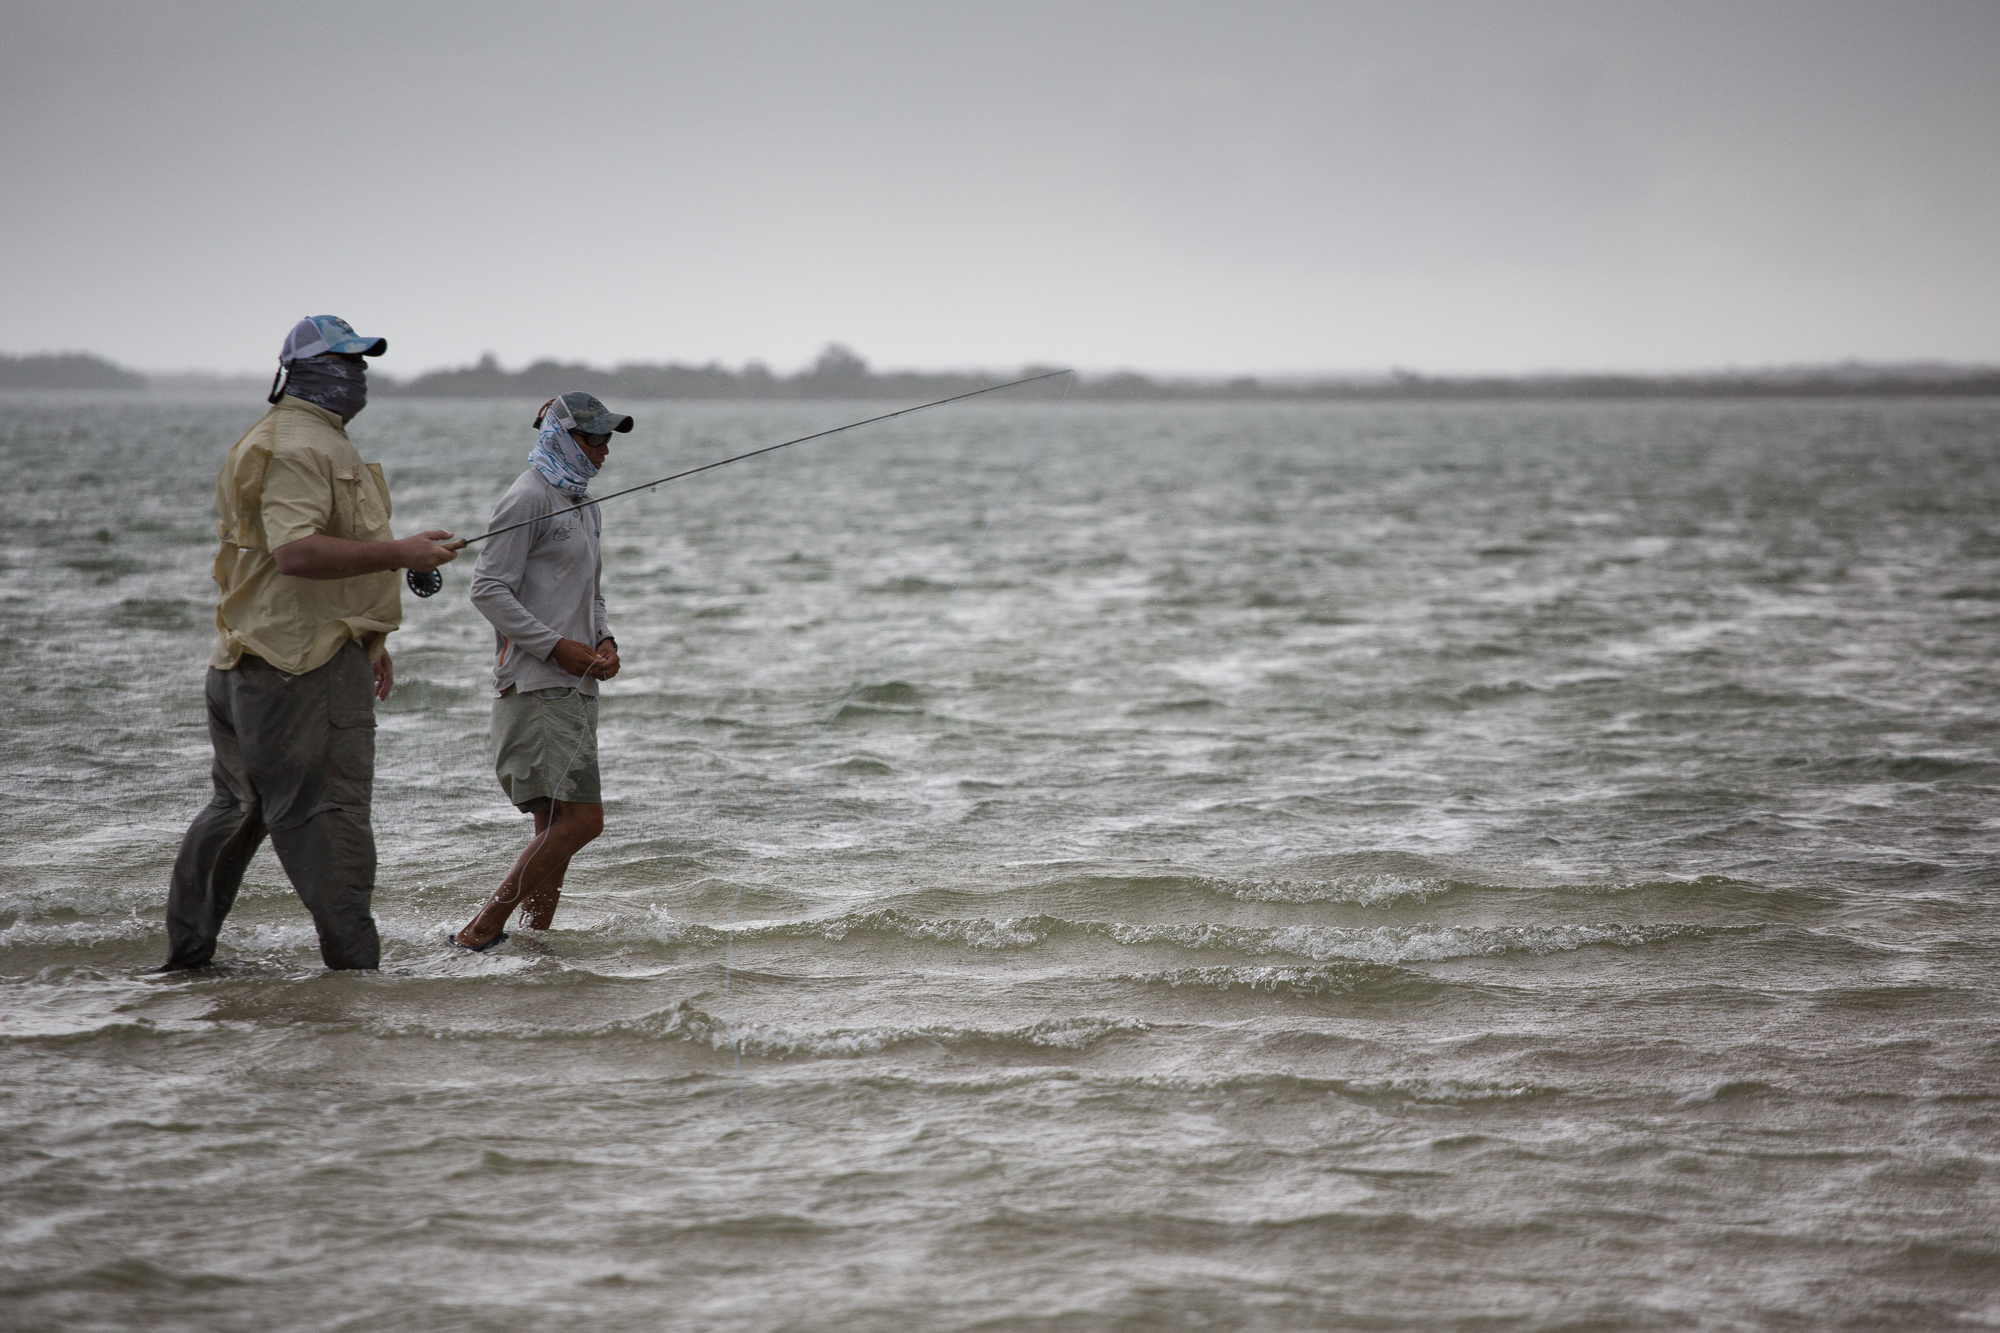 (1/3) Storms roll in only moments after arriving on a prime bonefish flat. Yet, despite steady rain and entirely flat light, guide Arun spots a few cruising bonefish 25 yards off. A couple of casts and backing runs later, a healthy bonefish comes to hand (photo: Chad Shmukler).